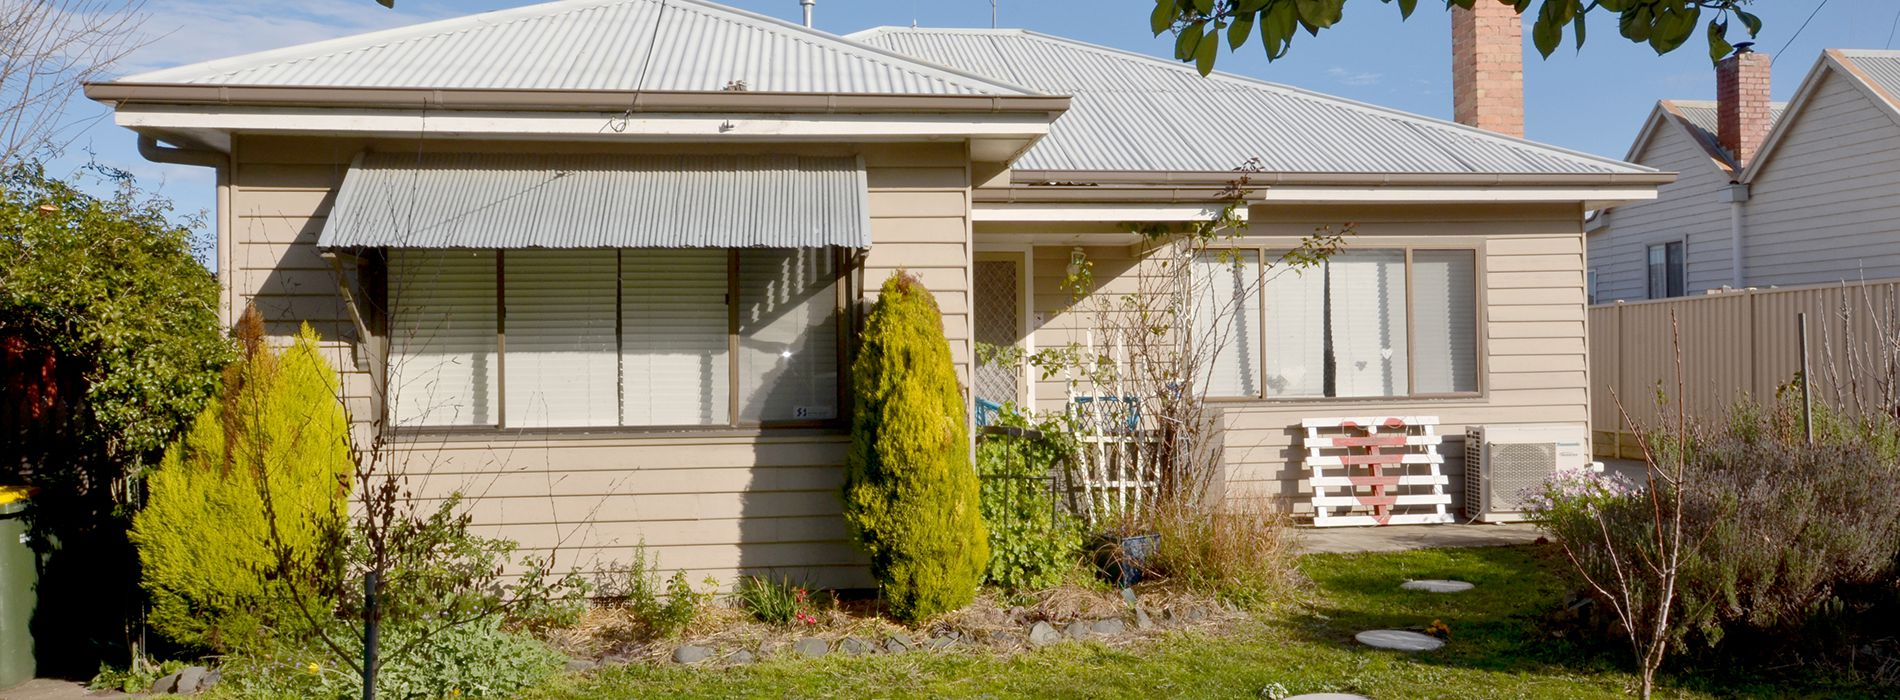 1/44 Bridge Street, Sebastopol